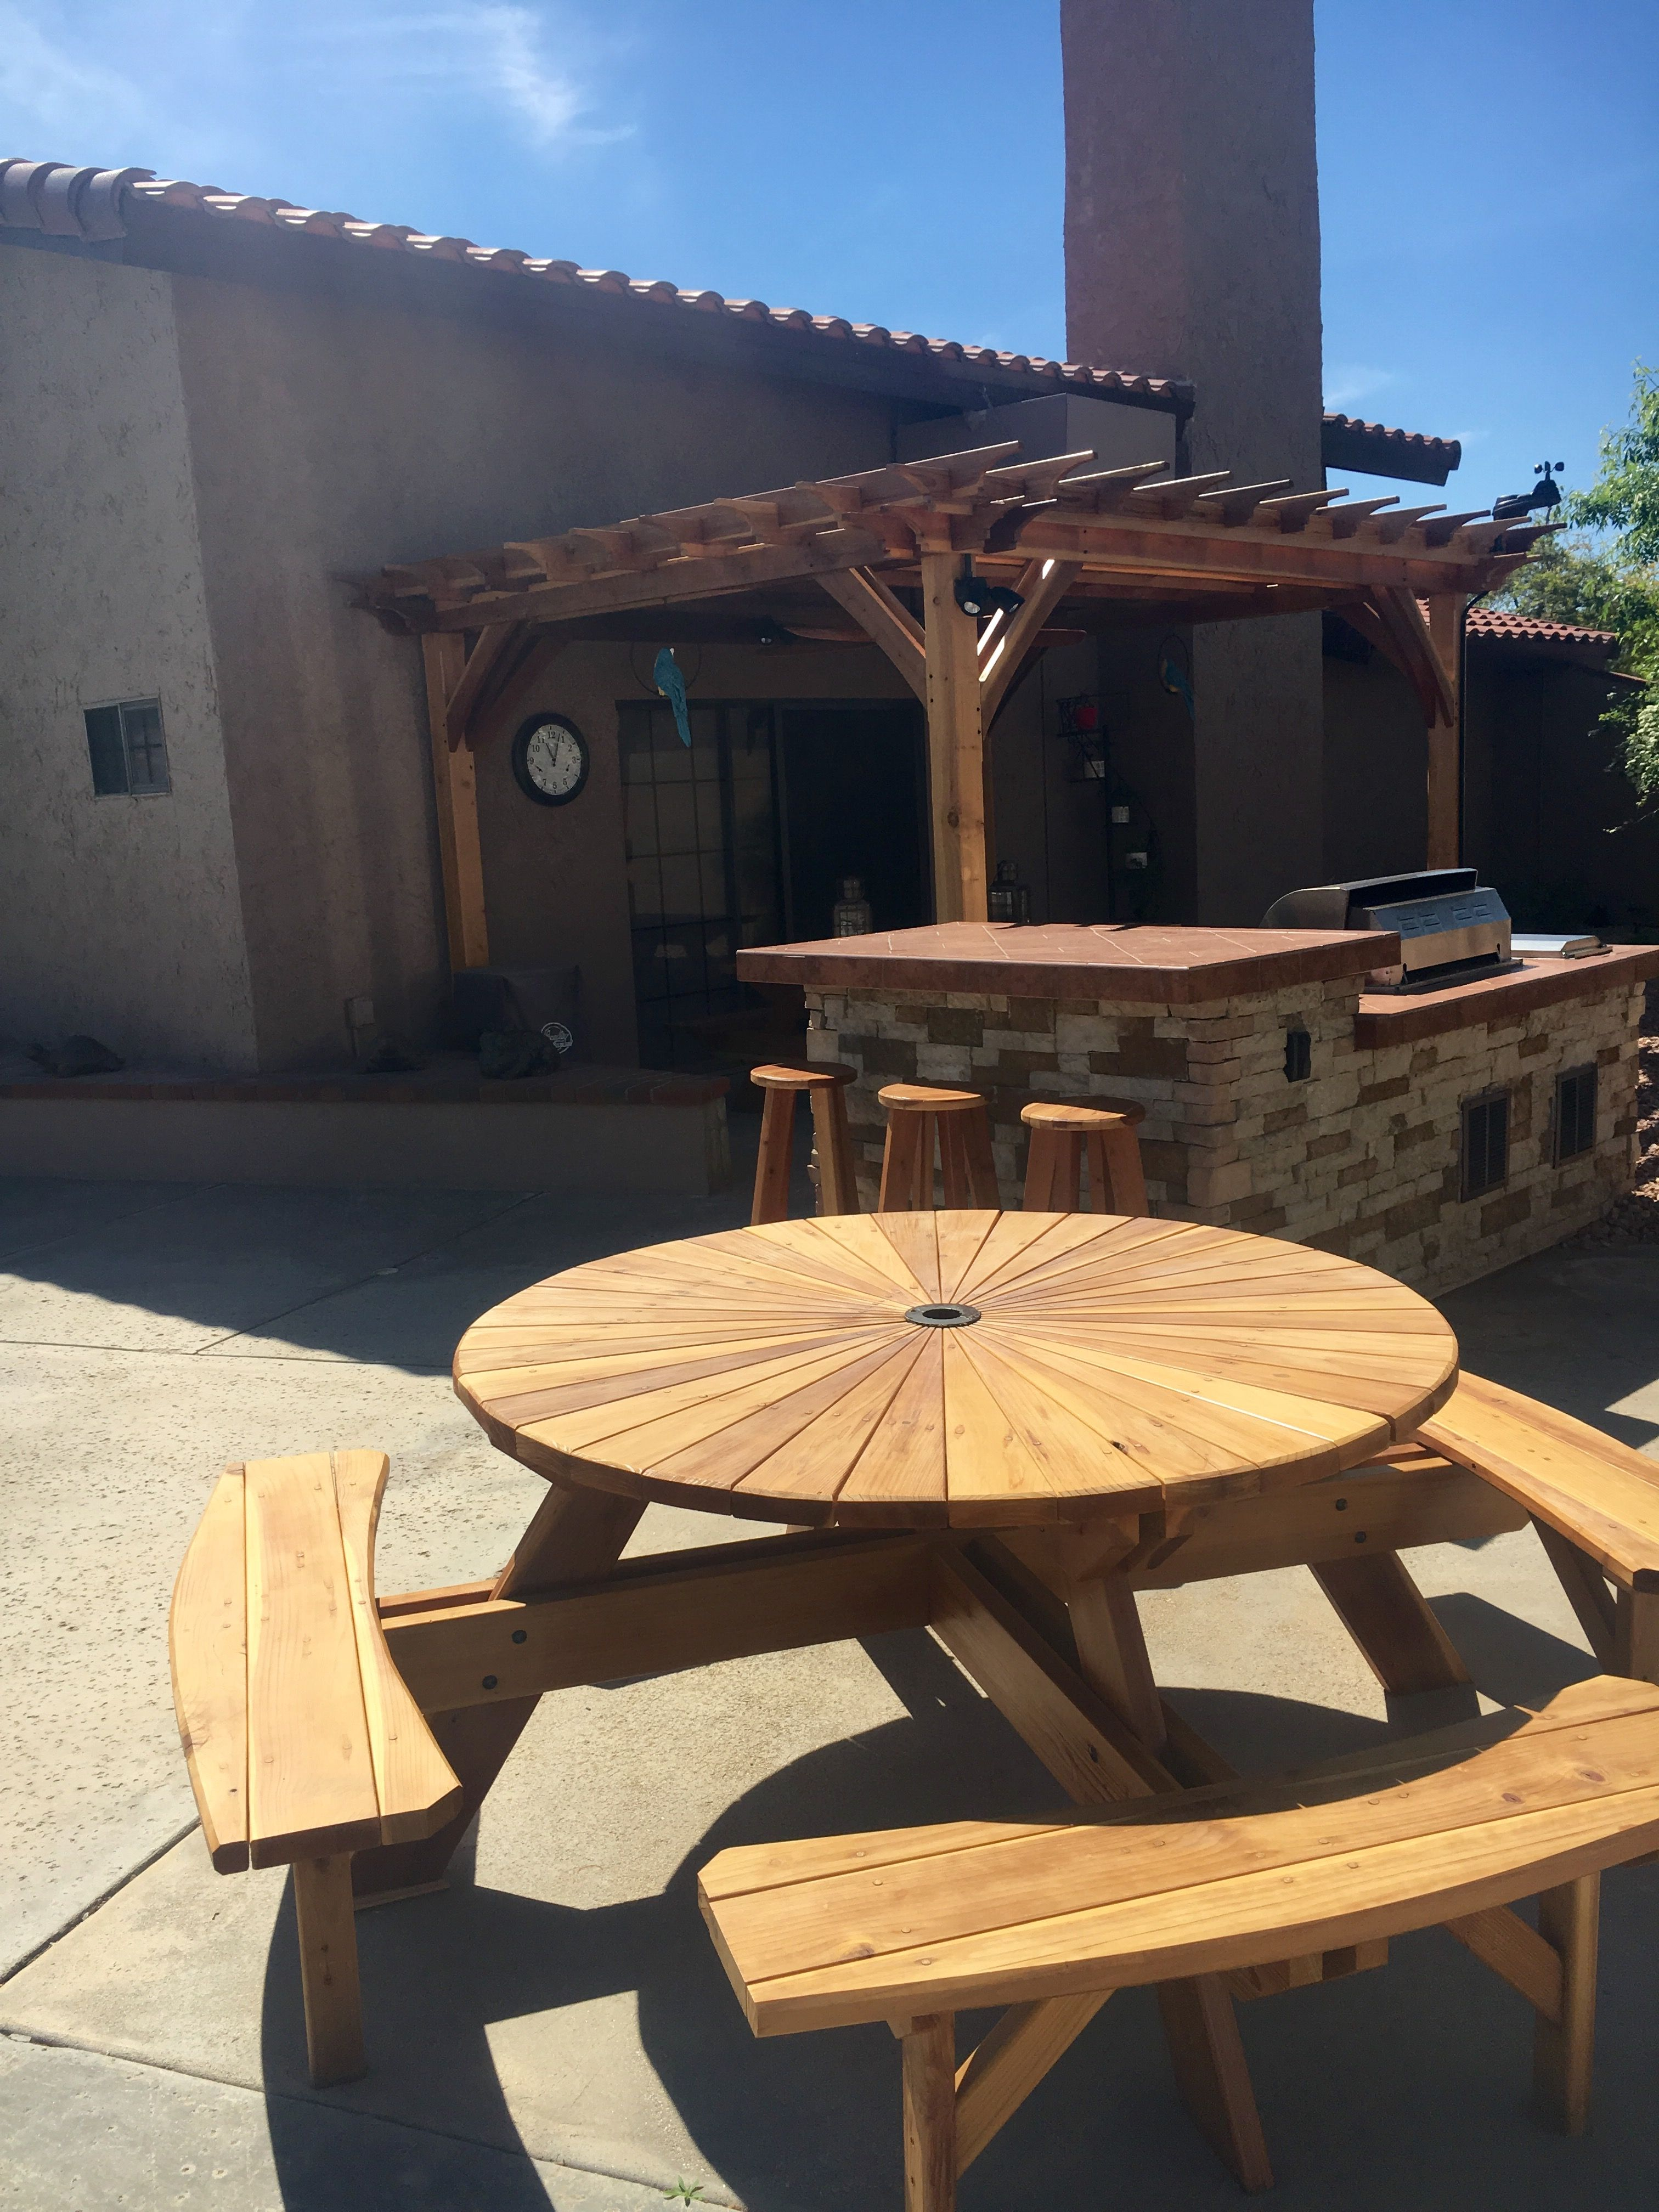 Redwood Patio Furniture Home Depot: Handcrafted Unique Round Picnic Table & Beautiful